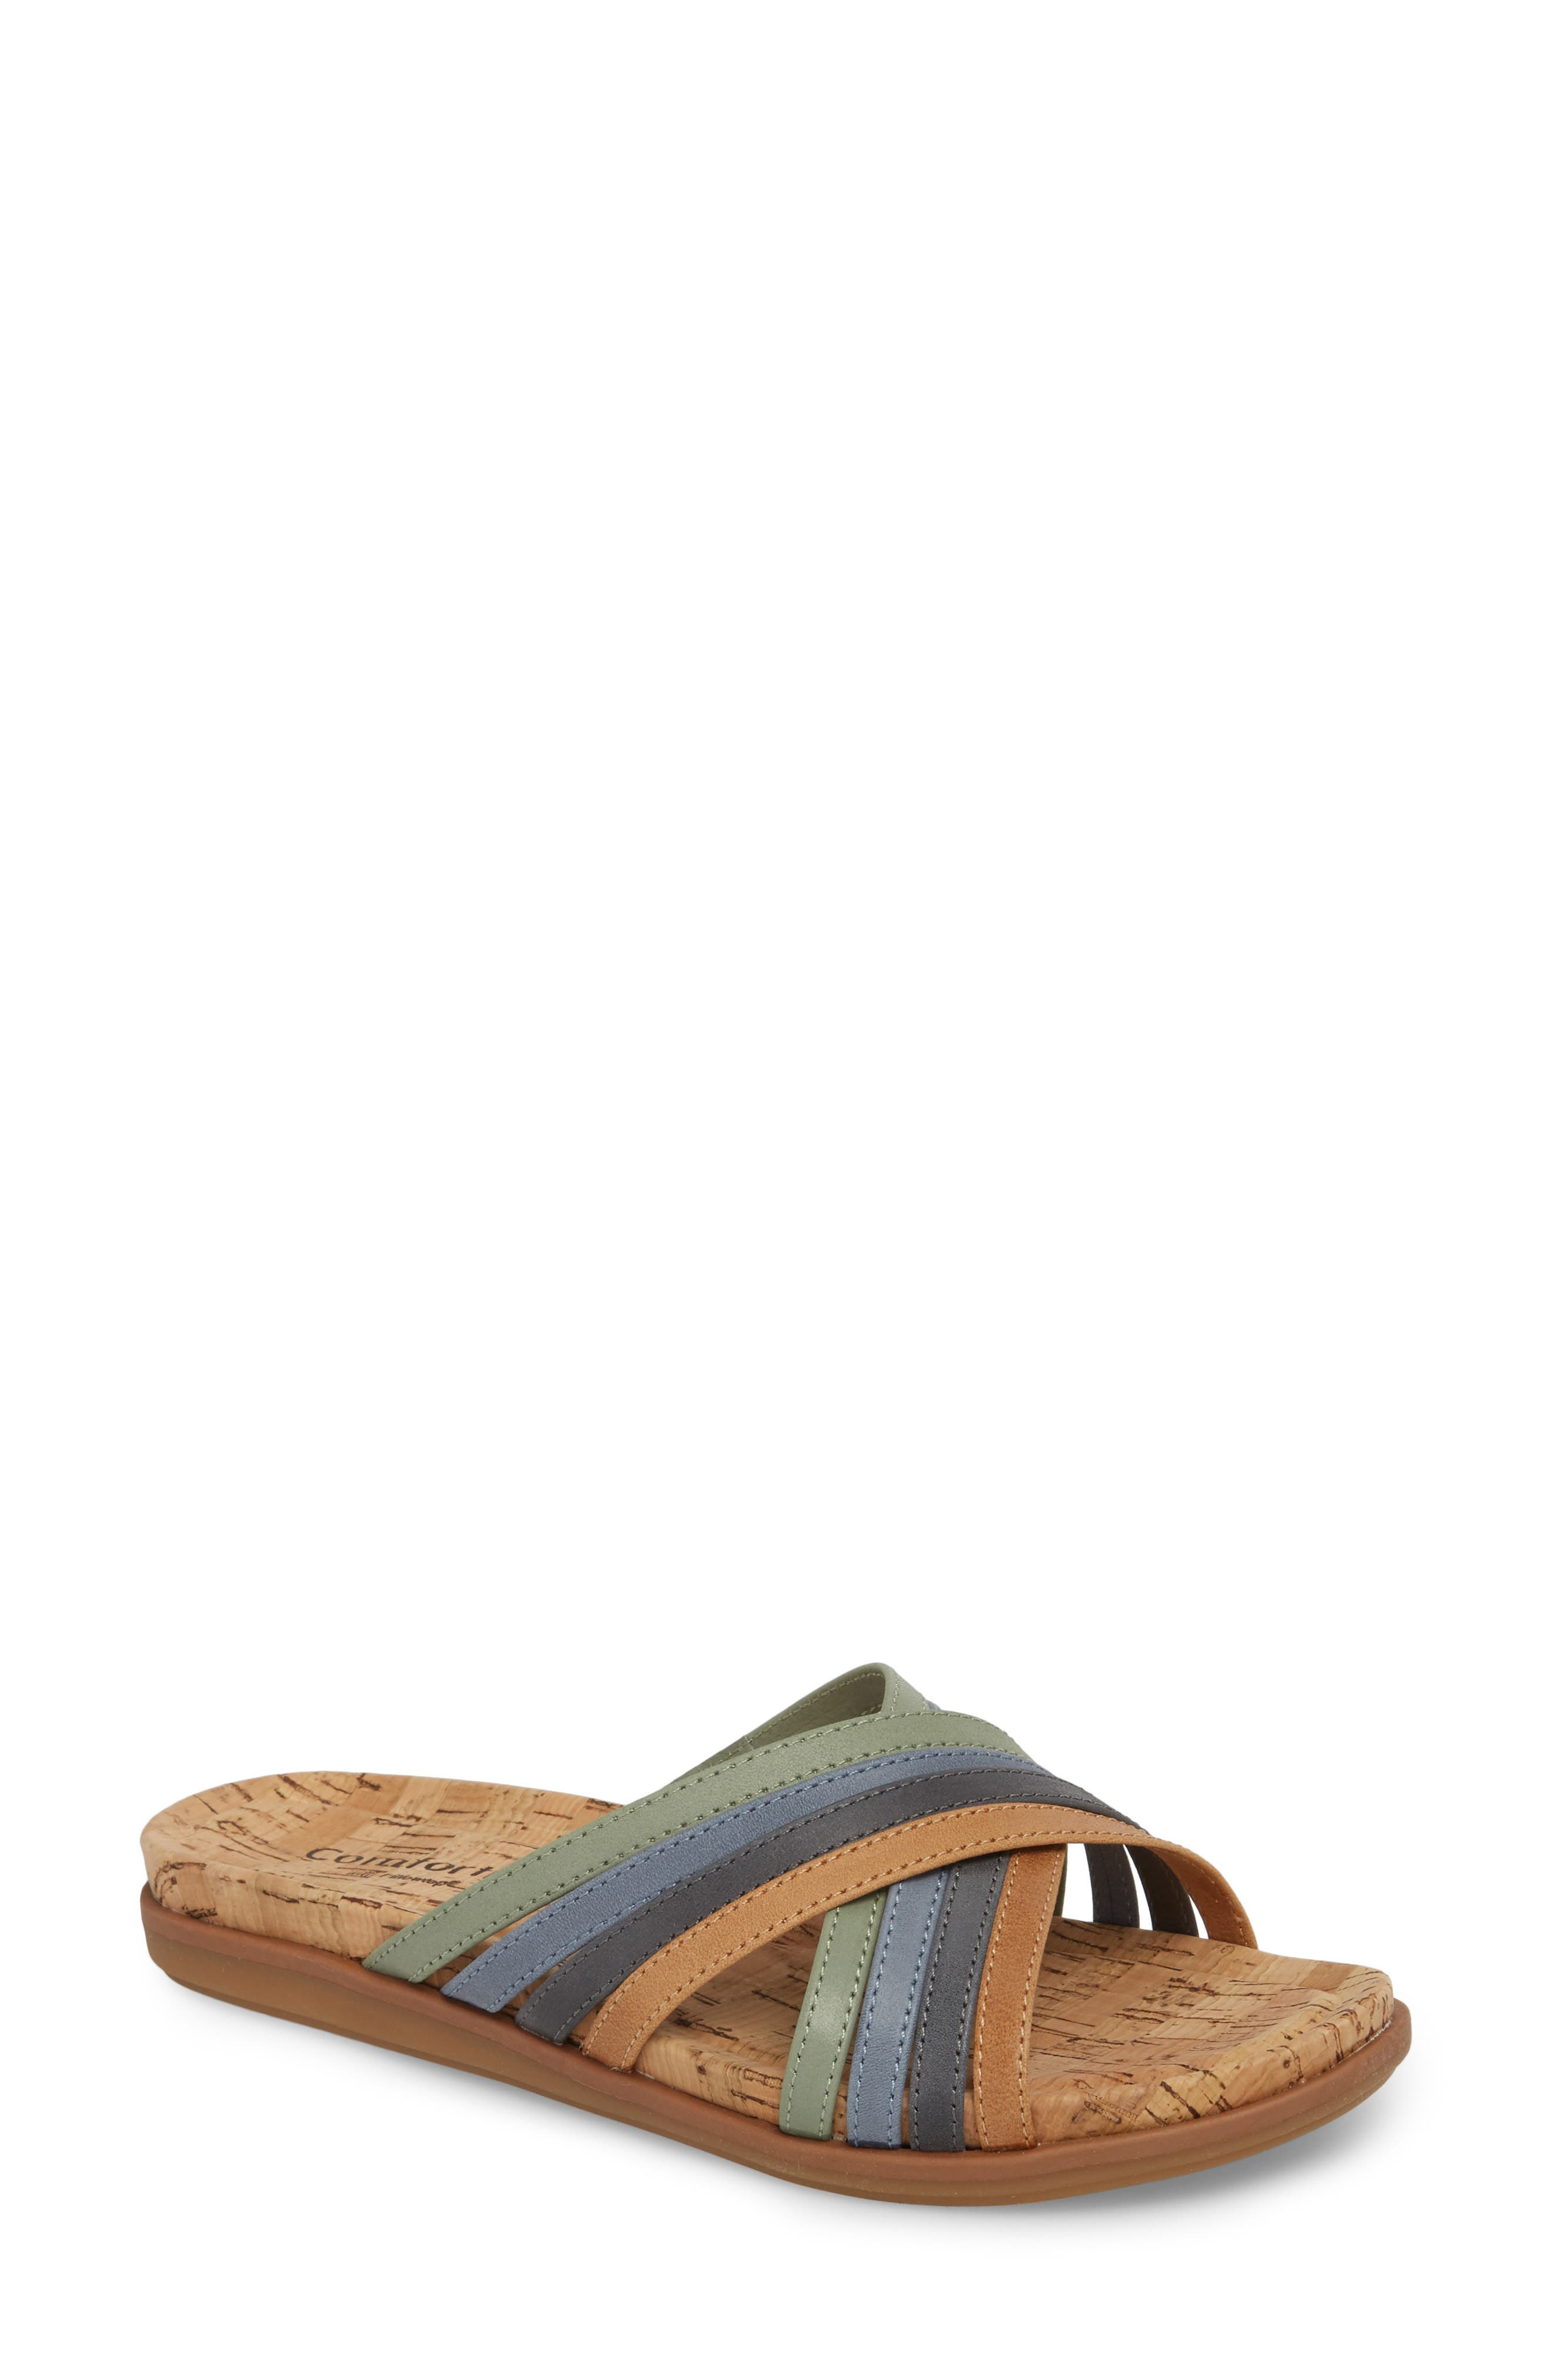 Comfortiva Women's Cayce Sandal 4PM2G6iP